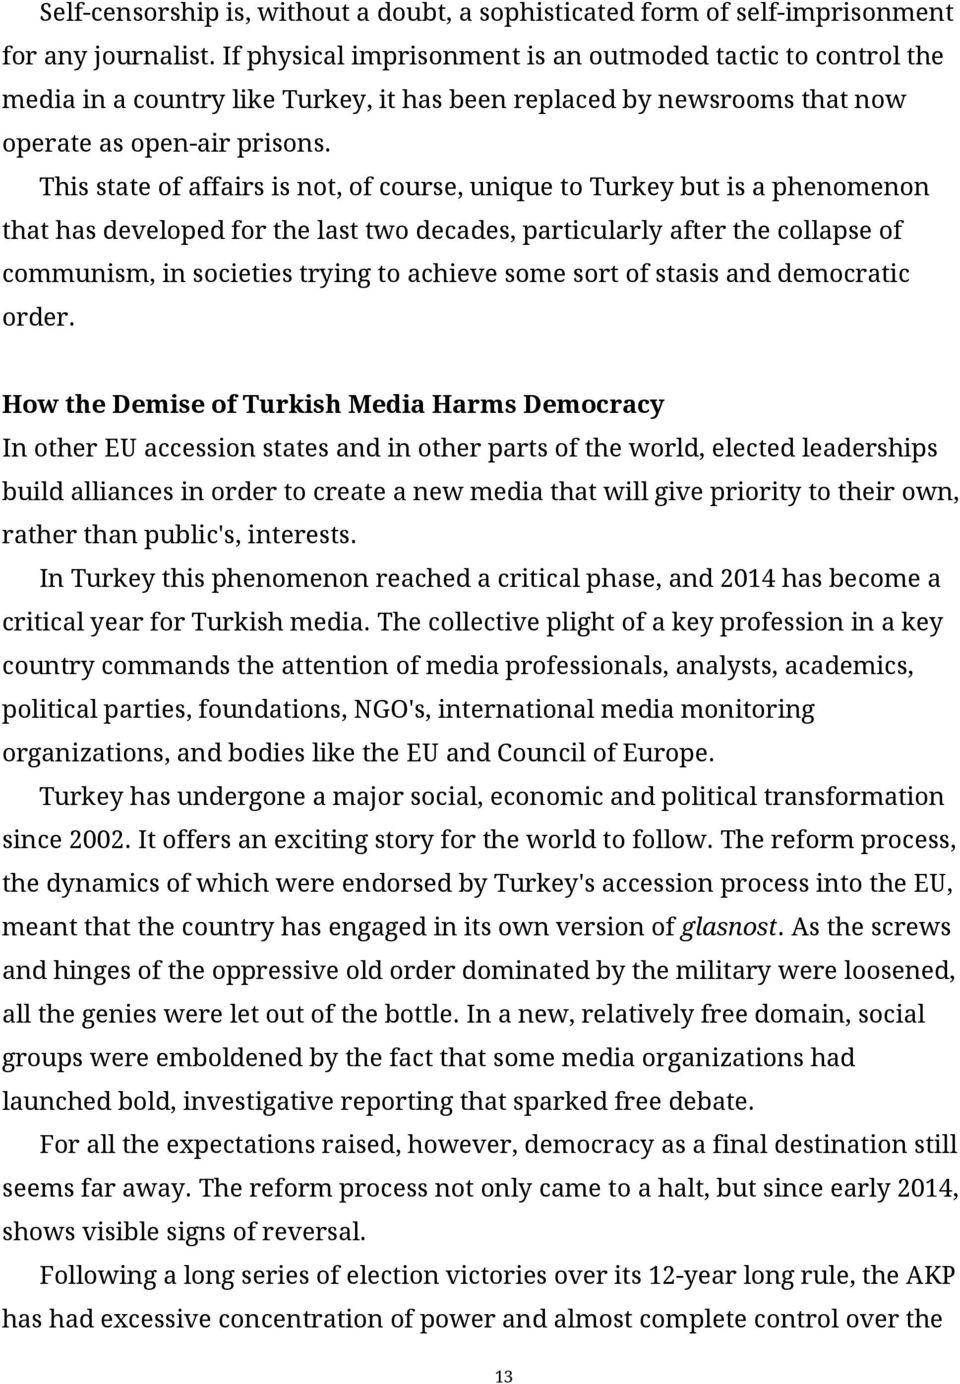 This state of affairs is not, of course, unique to Turkey but is a phenomenon that has developed for the last two decades, particularly after the collapse of communism, in societies trying to achieve